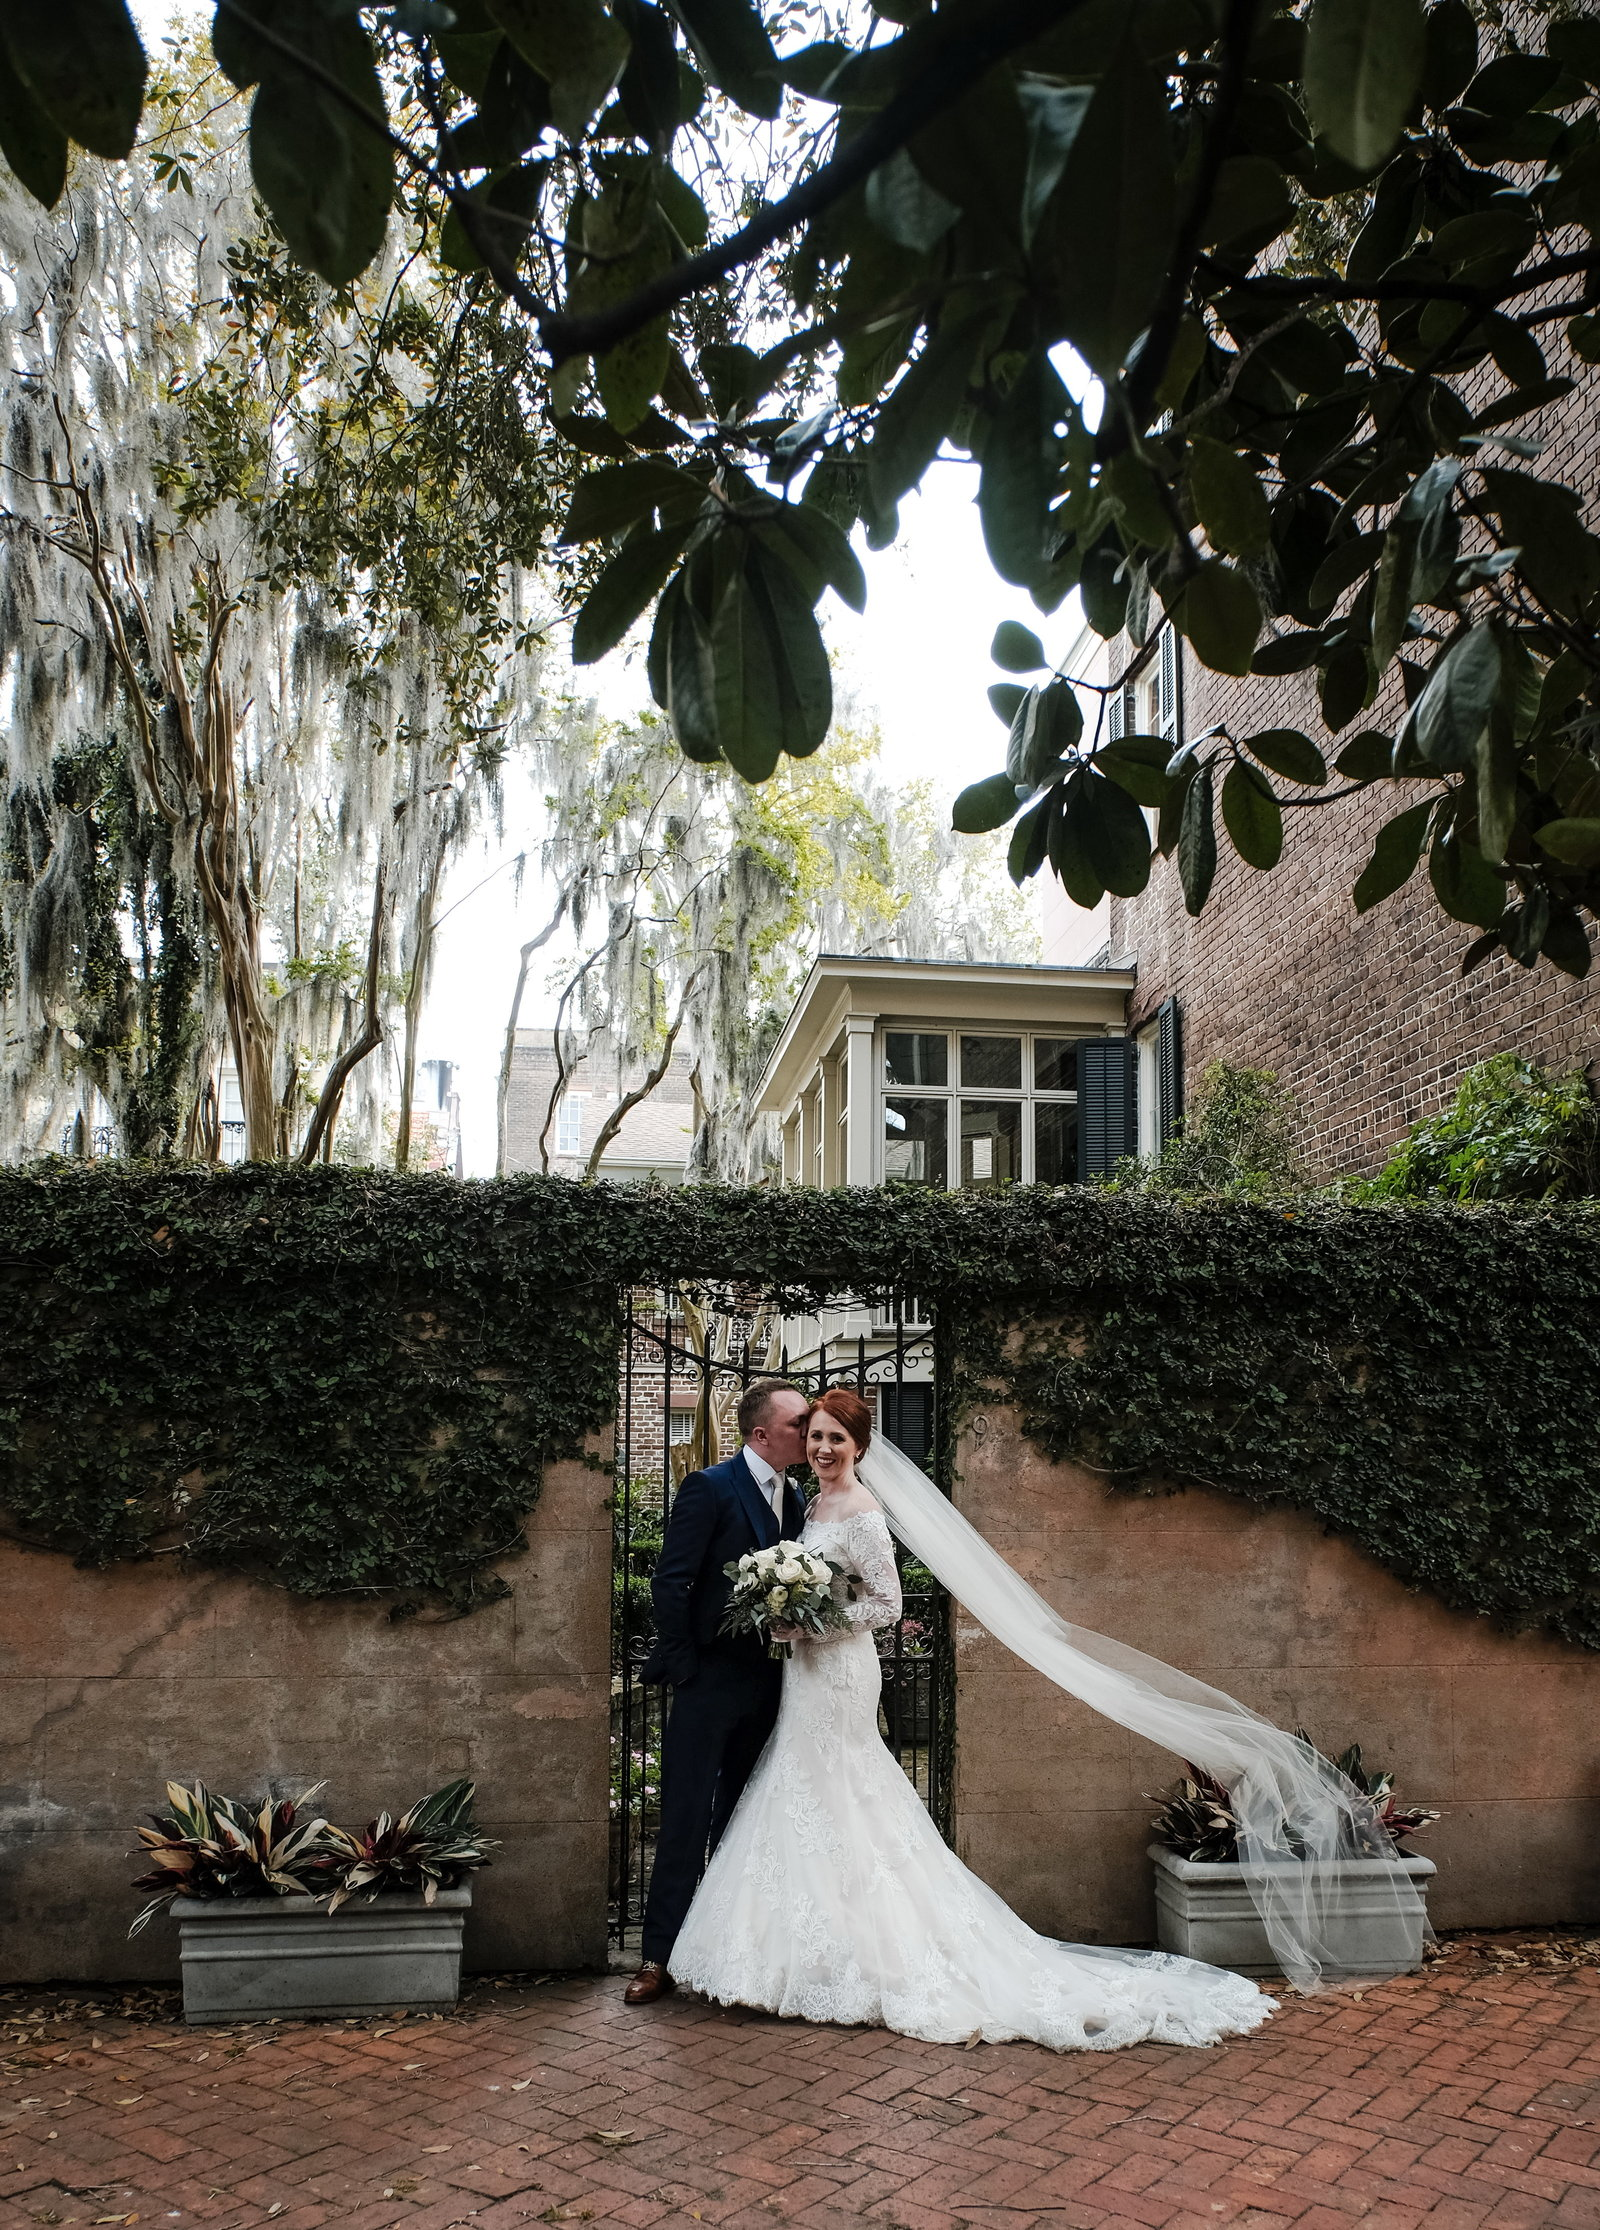 Savannah Wedding Photographer, Bobbi Brinkman Photography, Kathleen & Thomas